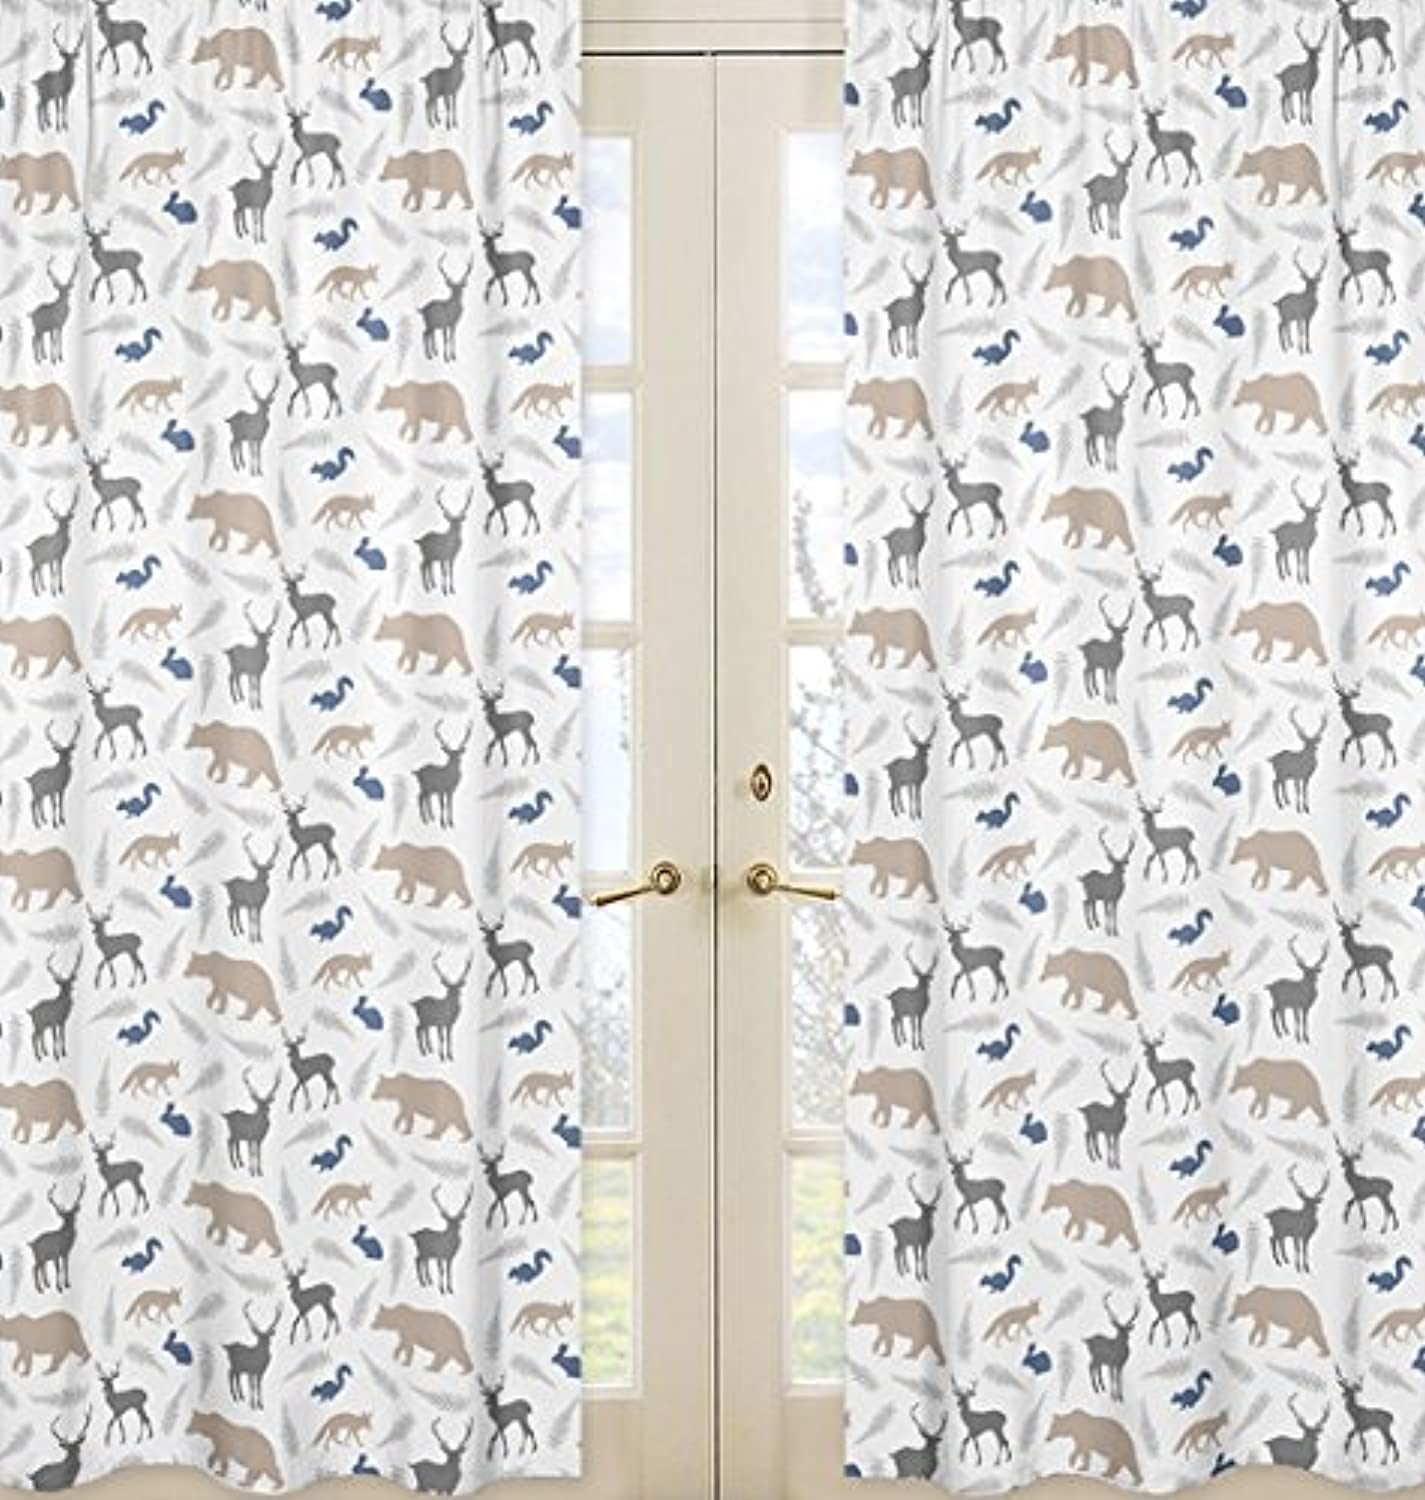 Sweet Jojo Designs 2-Piece Bear Deer Fox Window Treatment Panels for bluee Grey and White Woodland Animals Collection